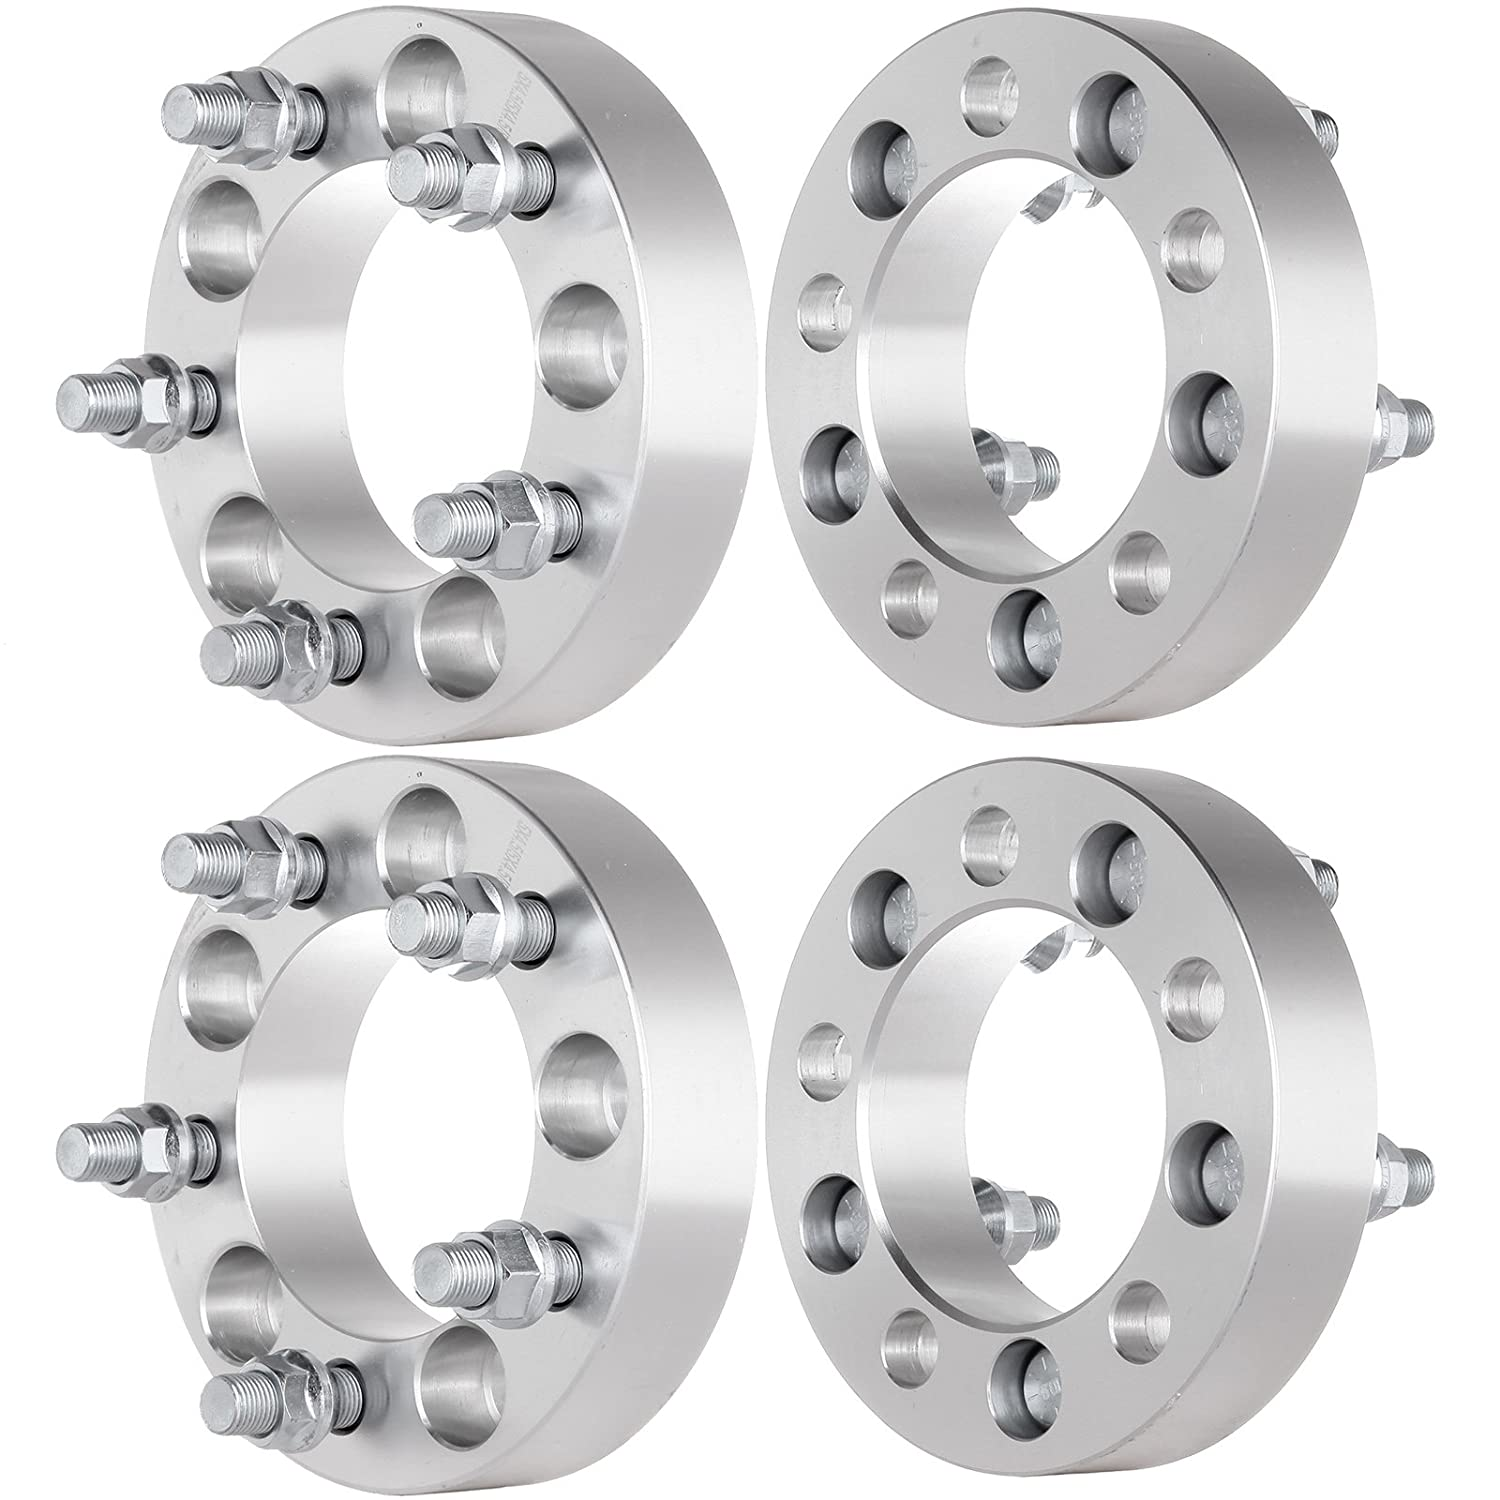 ECCPP 5x4.5 Wheel Spacers, 5 lug Wheel Spacers 4X 1.25 5x4.5 to 5x4.5 87.1mm 1/2' x 20 Fit for 2006-2012 Jeep Liberty|1989-1998 Jeep Grand Cherokee Wrangler 1.25 5x4.5